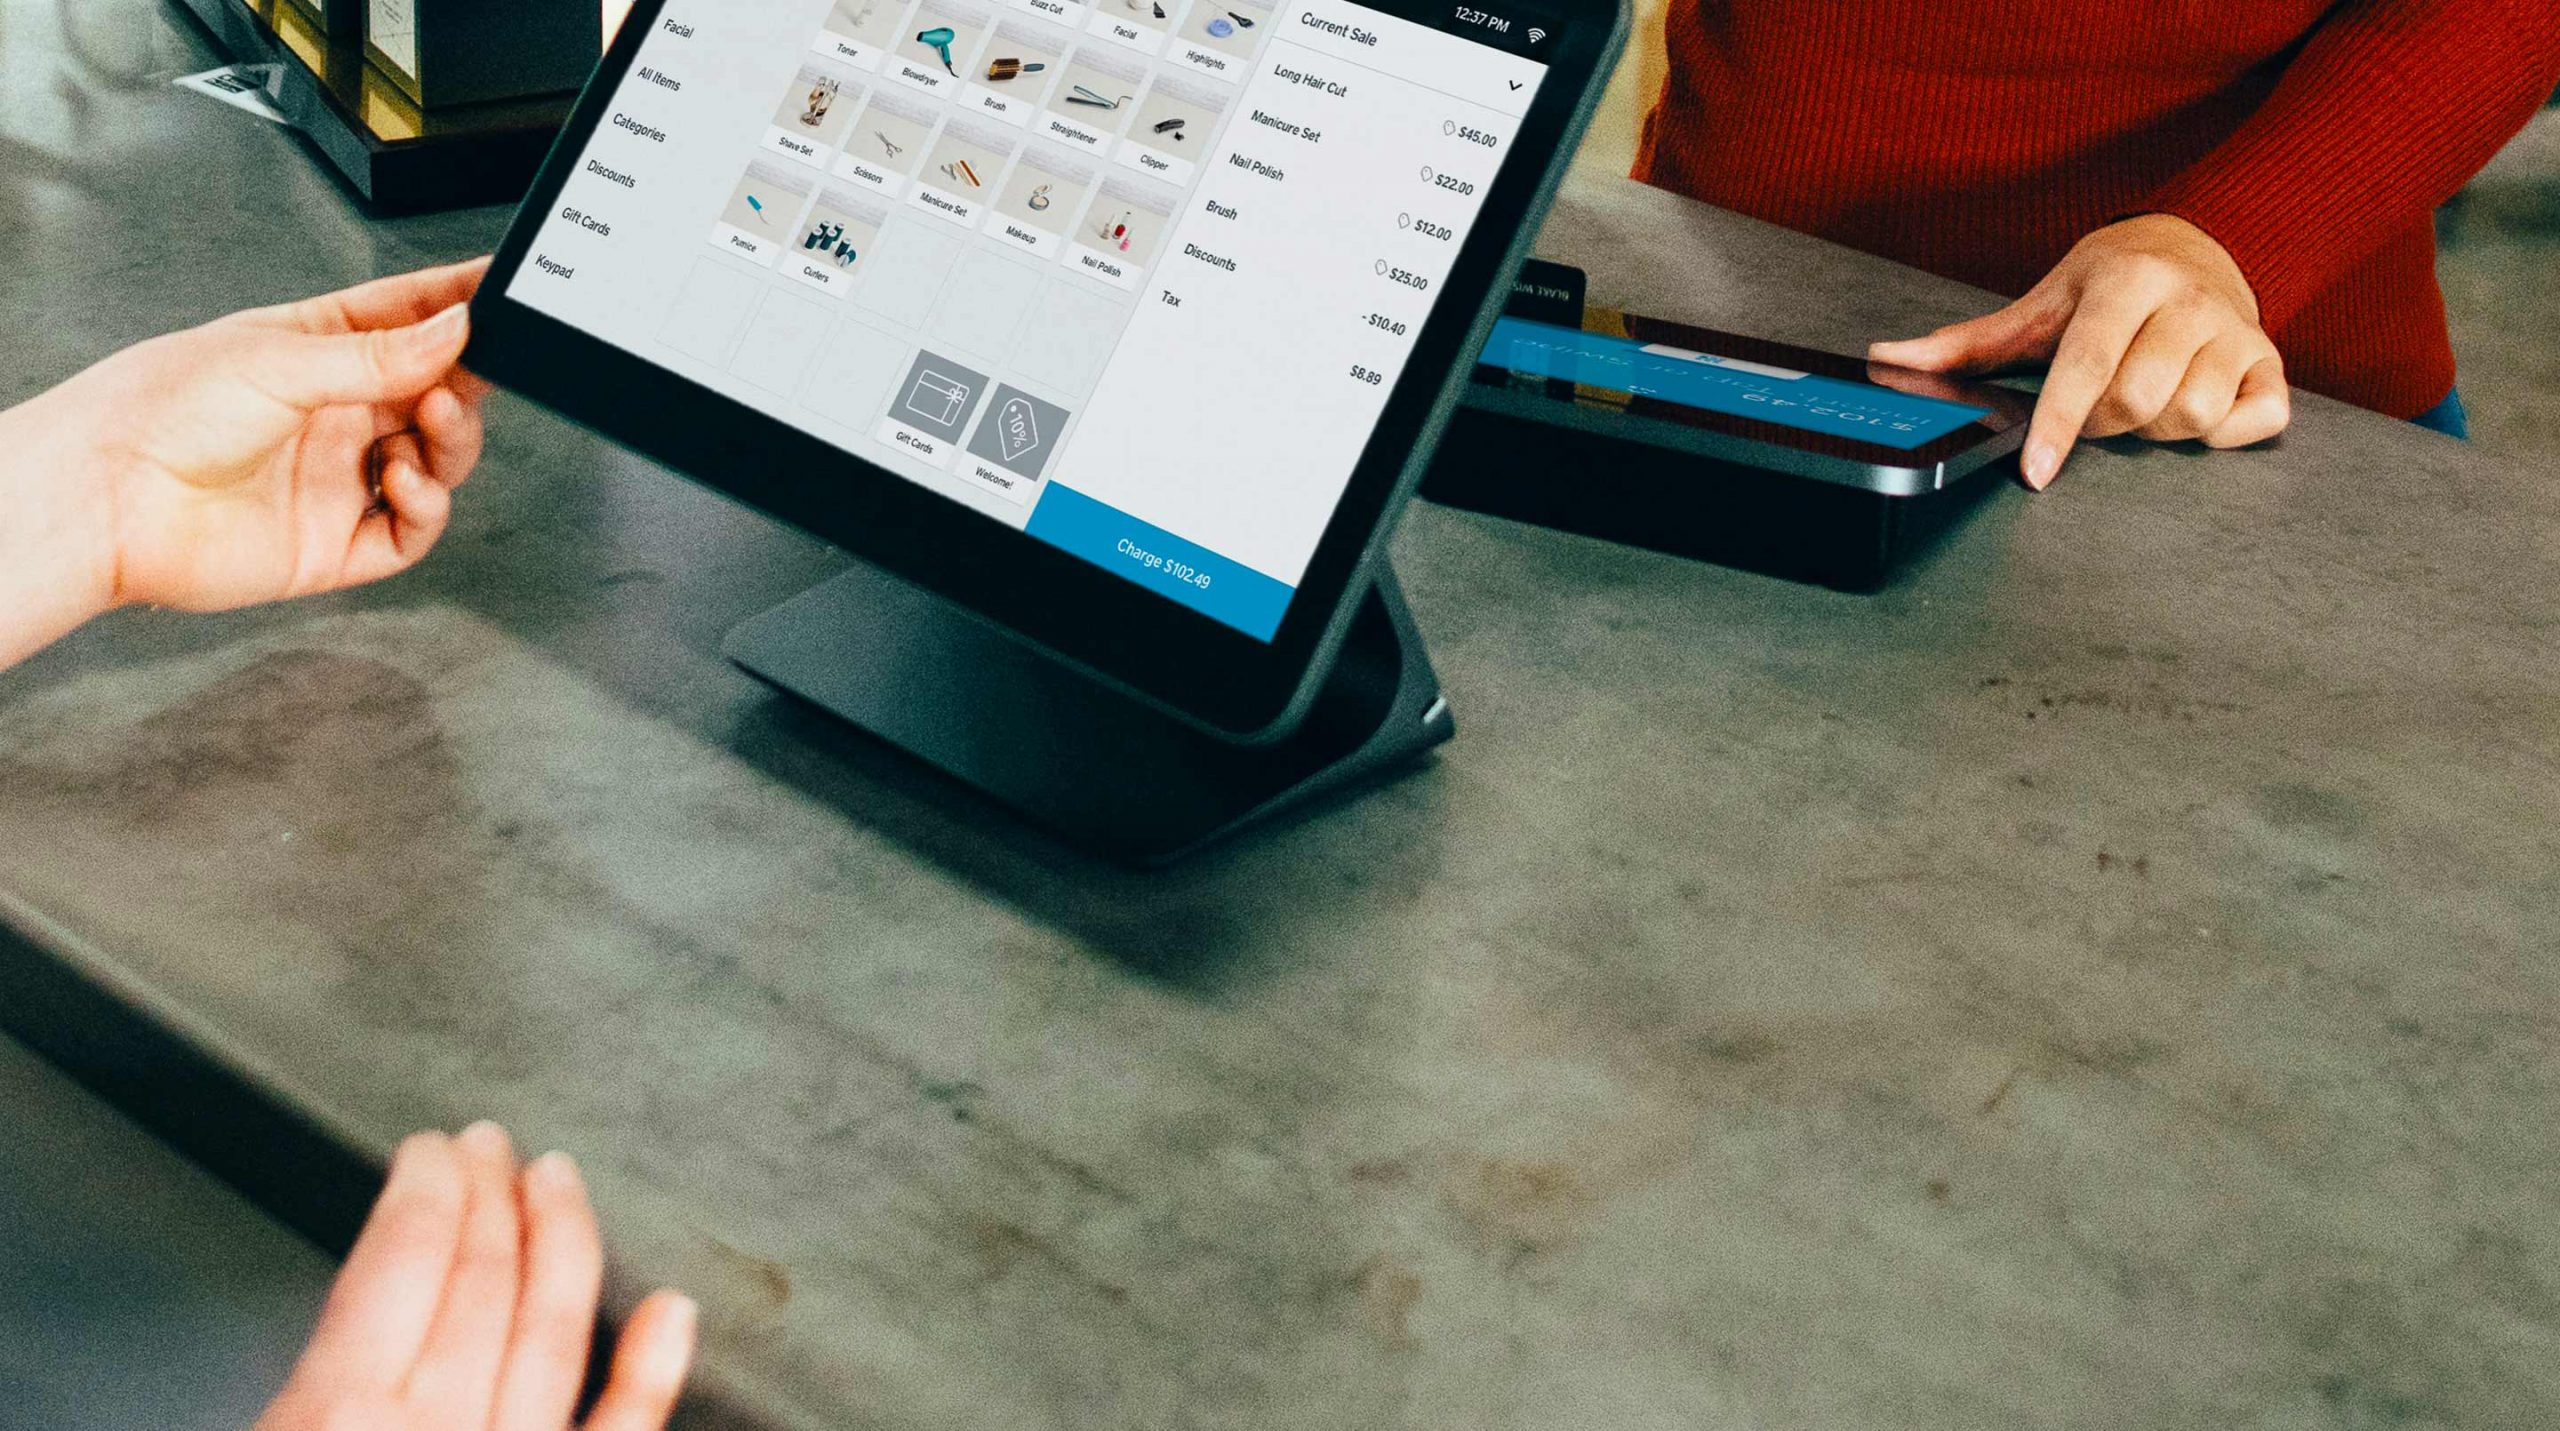 Learn how PenFed is delivering Point of Sale (POS) lending, and you can too!